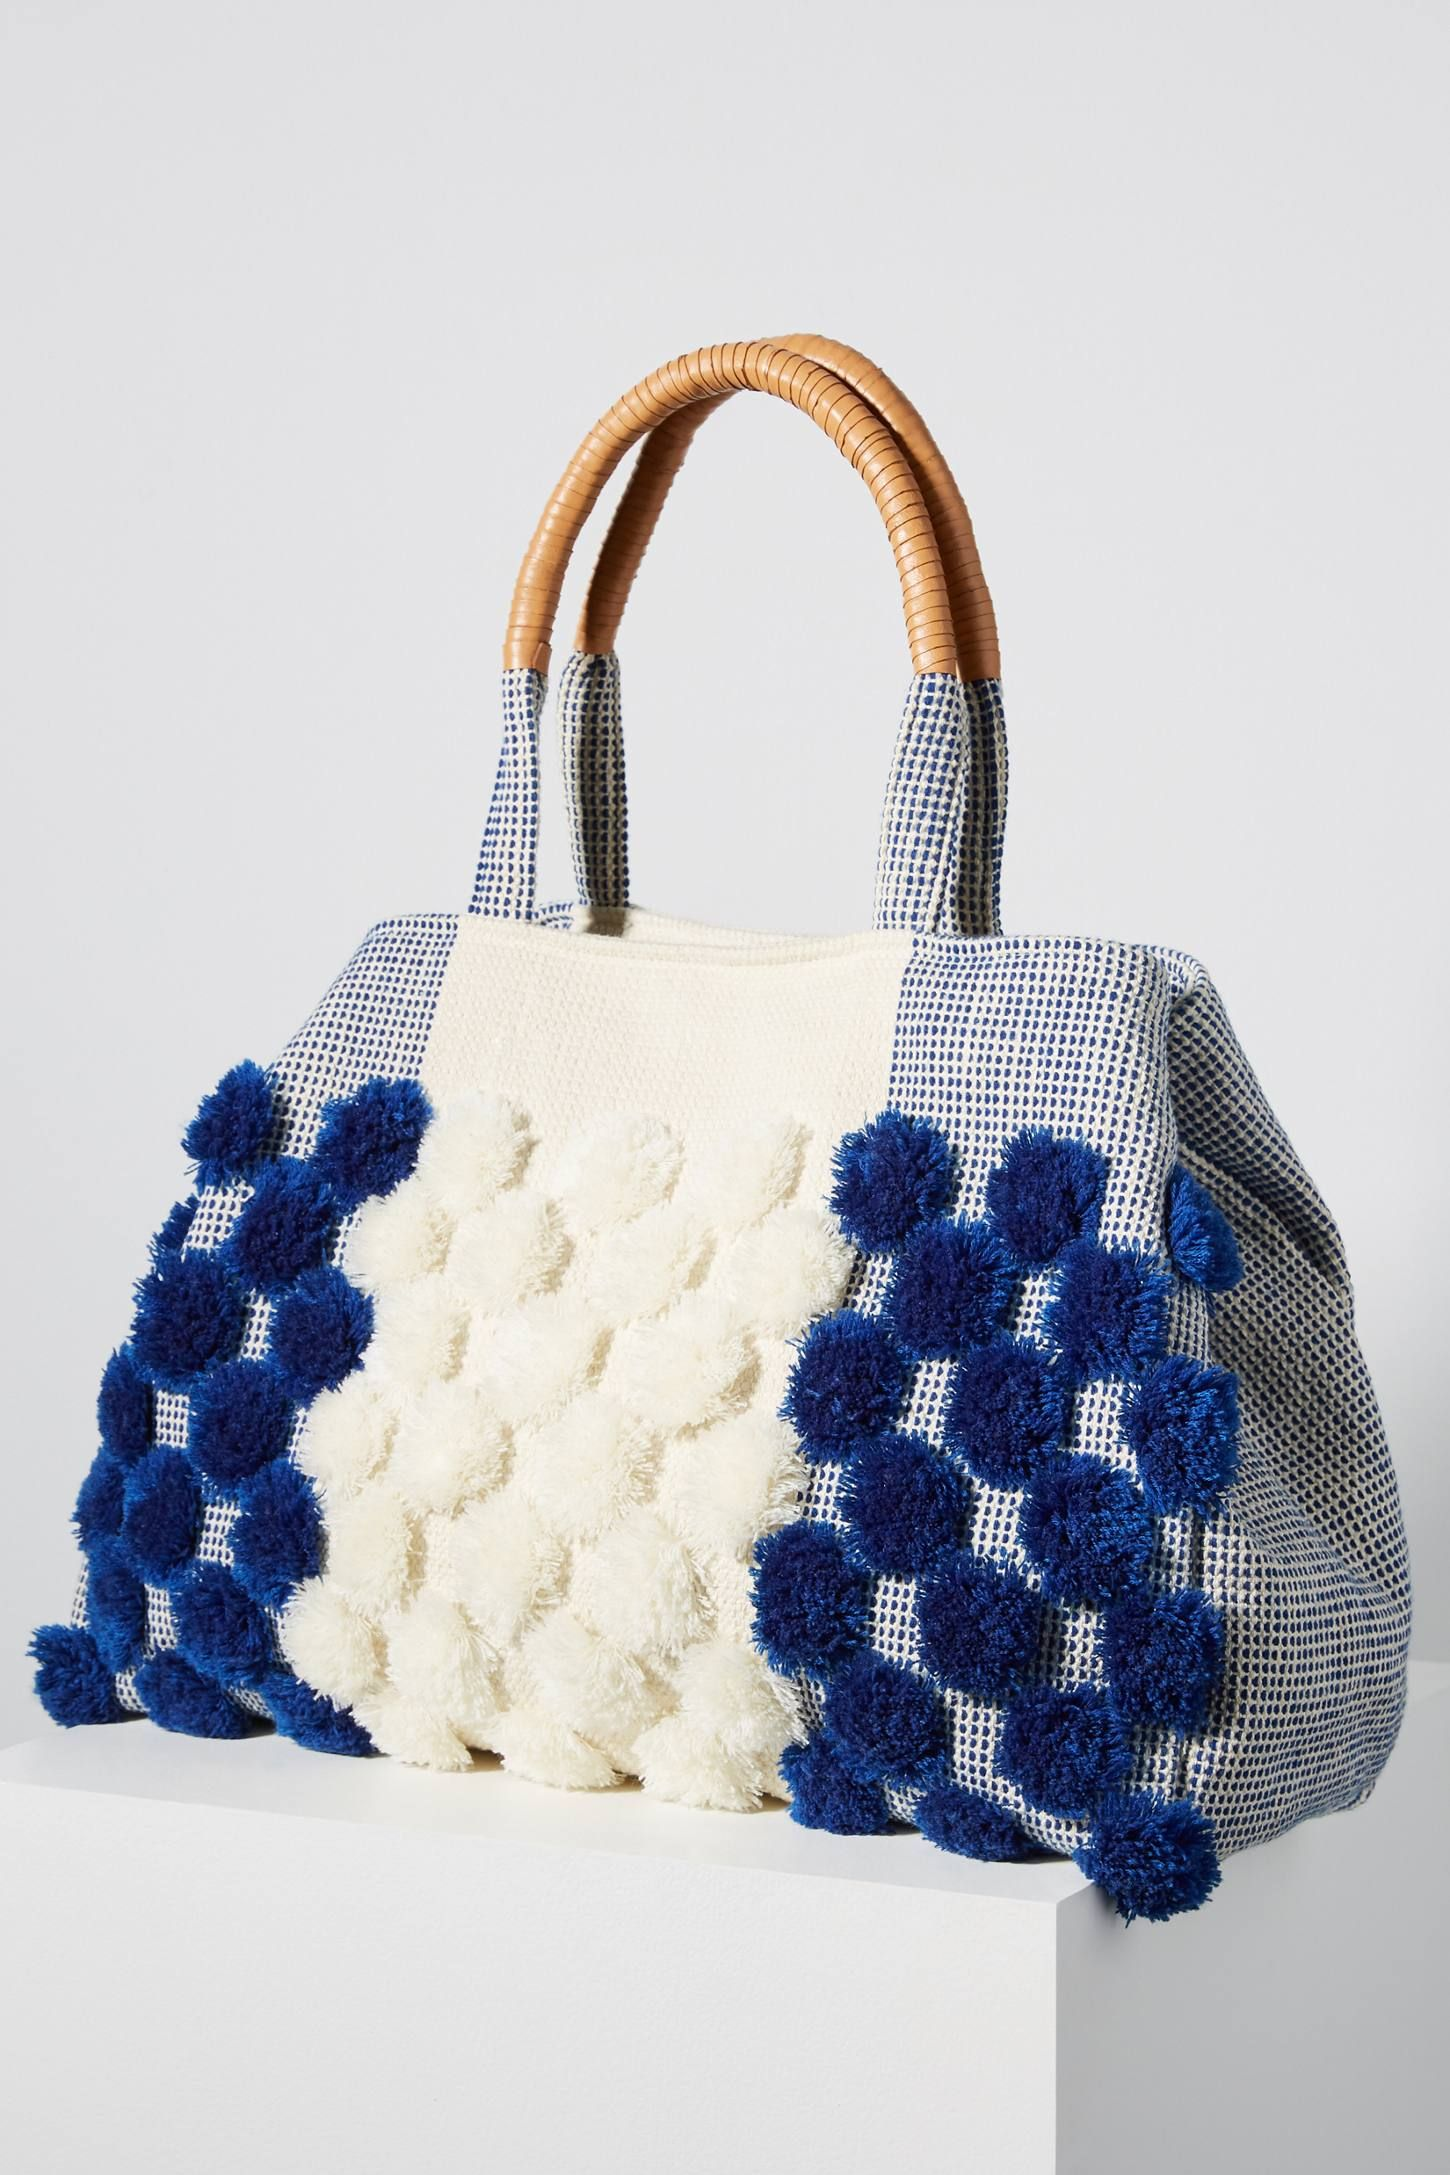 1de449a7 33 of the Best Tote Bags You Can Buy Right Now (They're, Like, Really  Pretty)